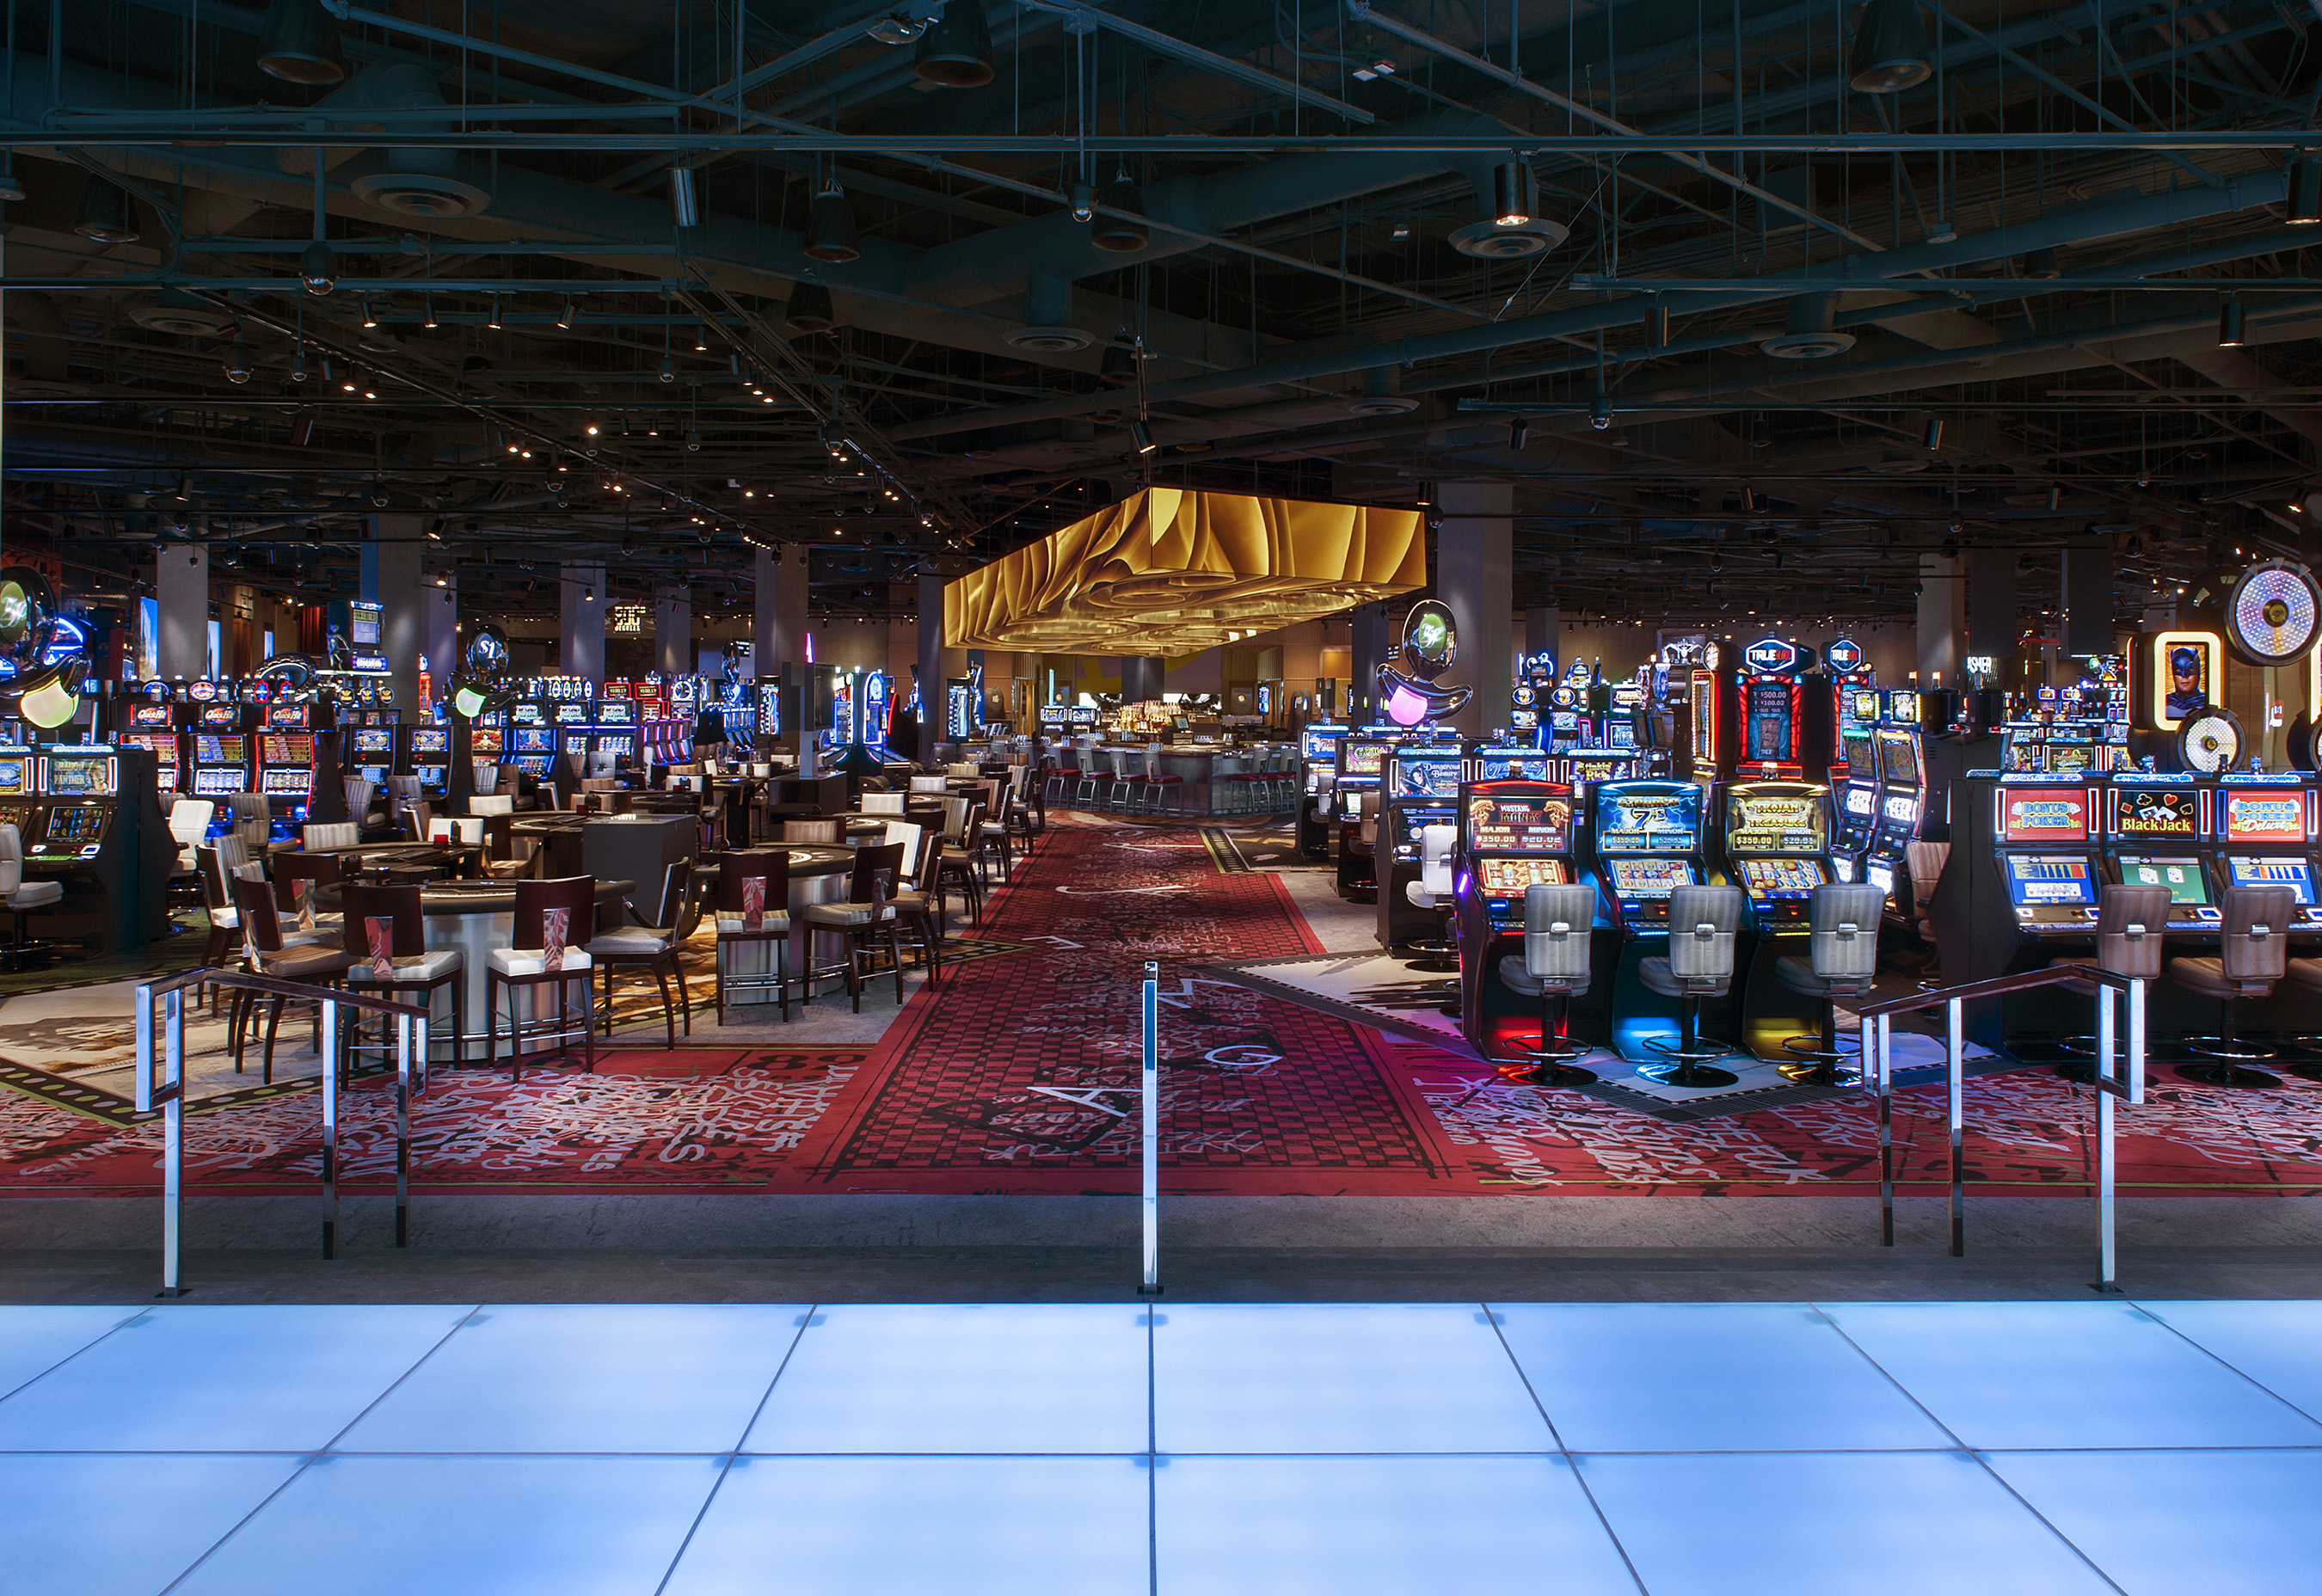 New all-encompassing resort and casino, SLS Las Vegas features three distinctive towers, and boasts a collection of sbe's acclaimed restaurant and nightlife brands.